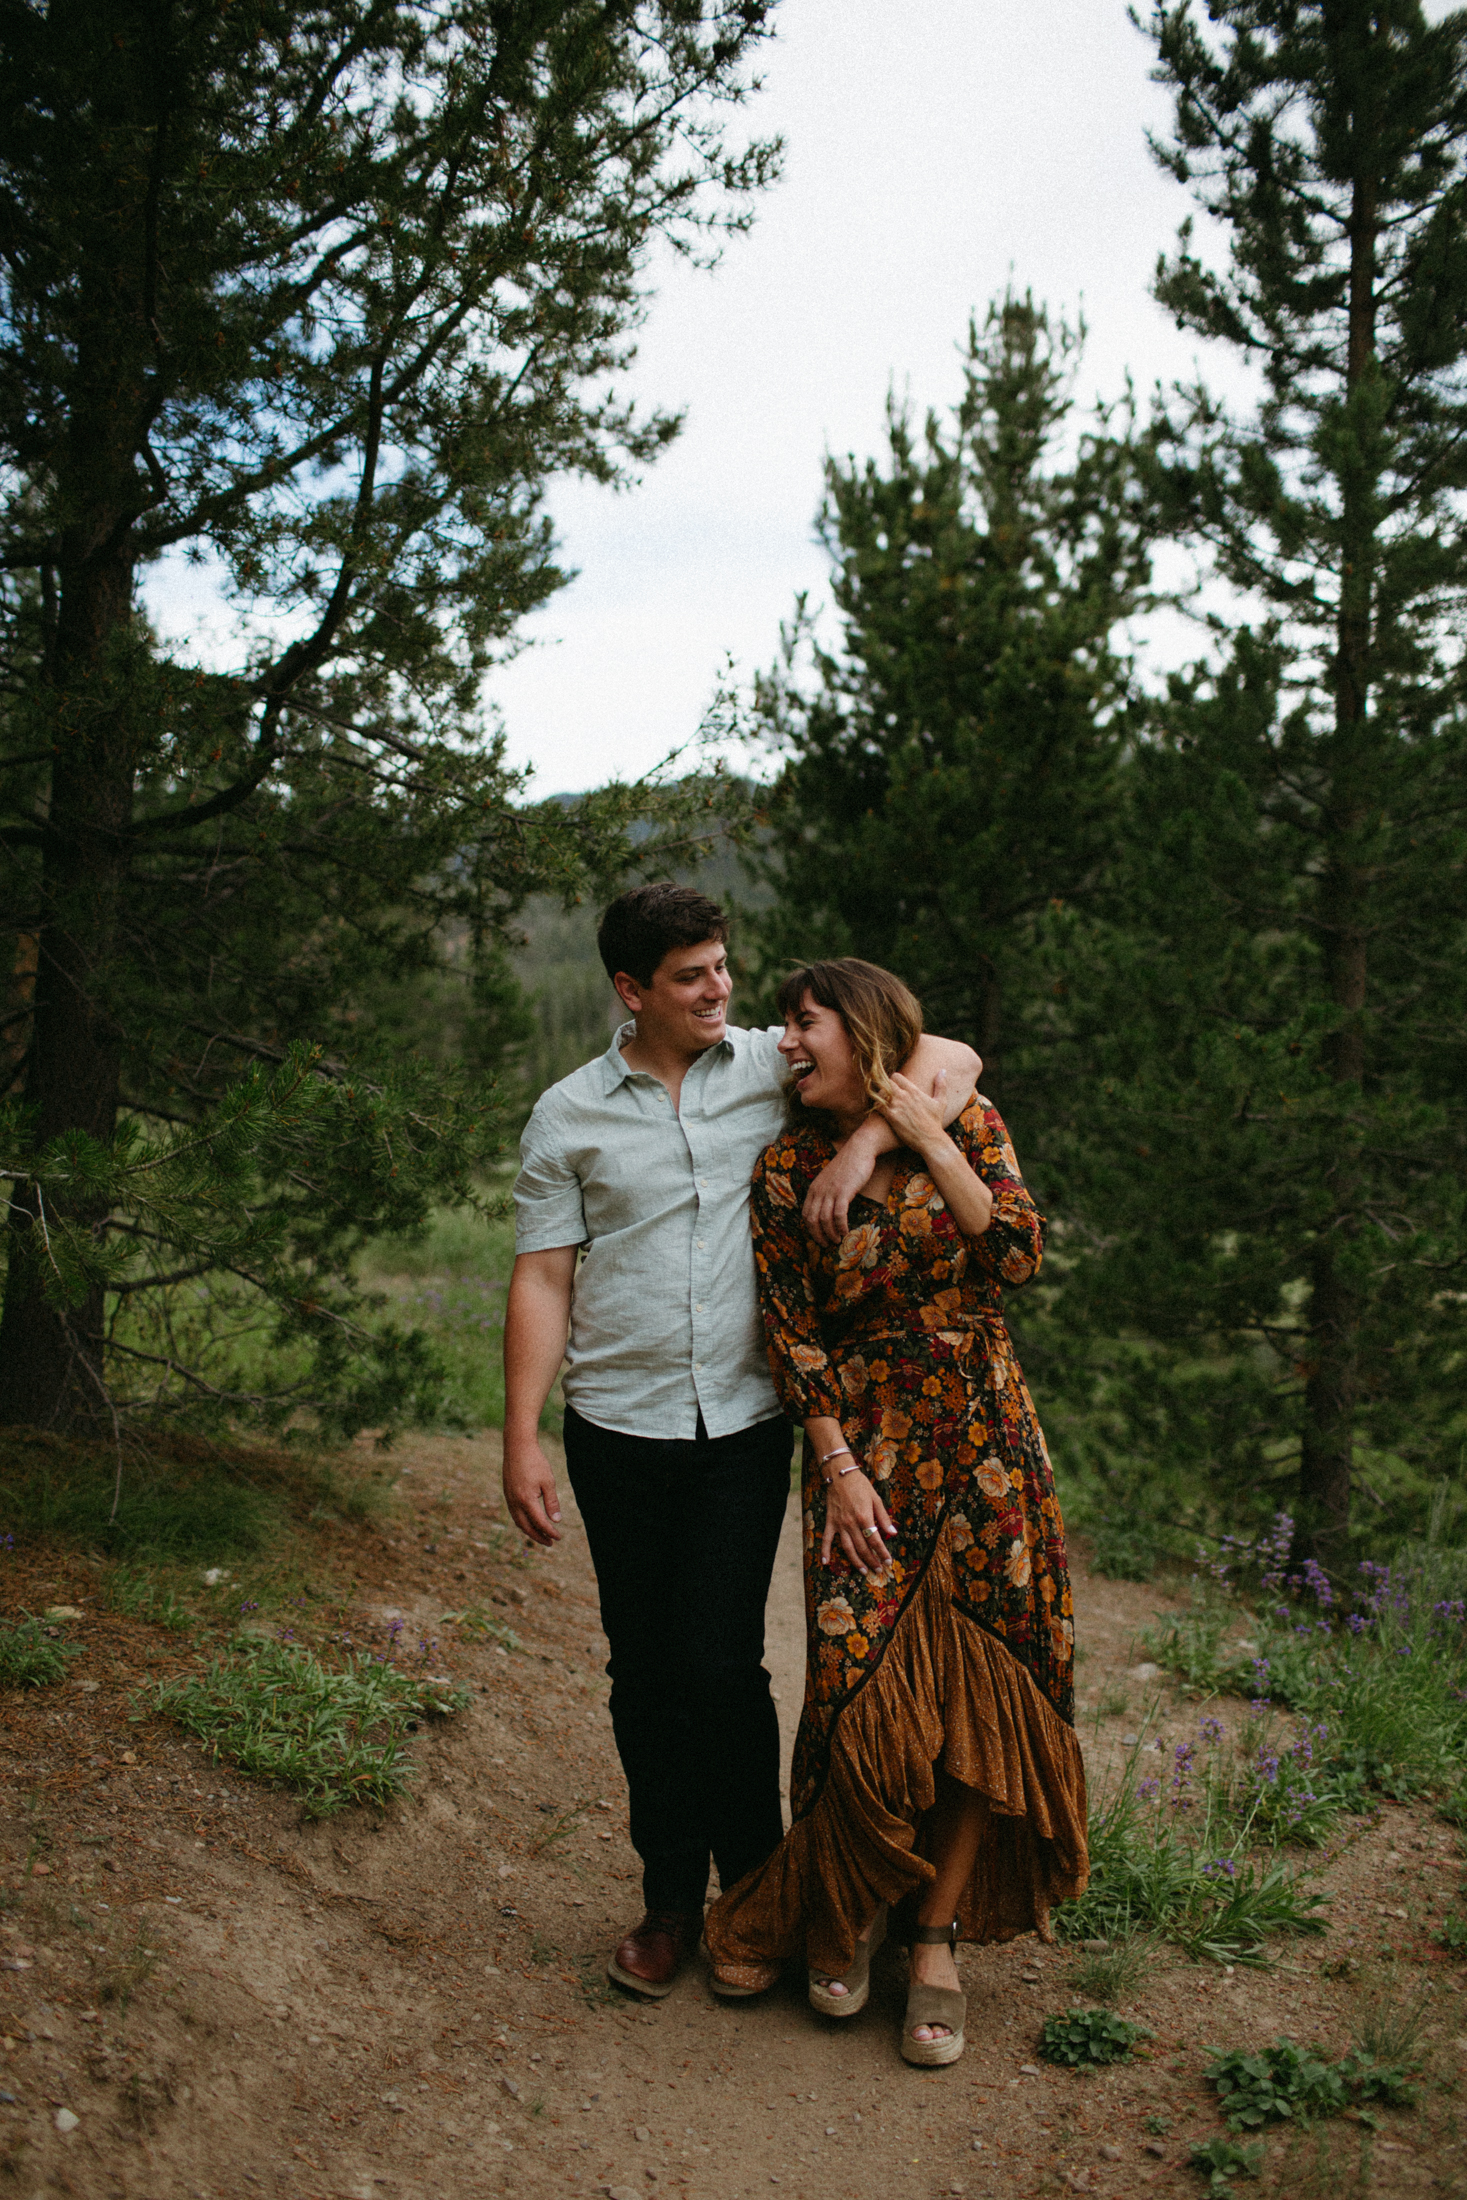 galena-engagement-session-christinemarie-23.jpg